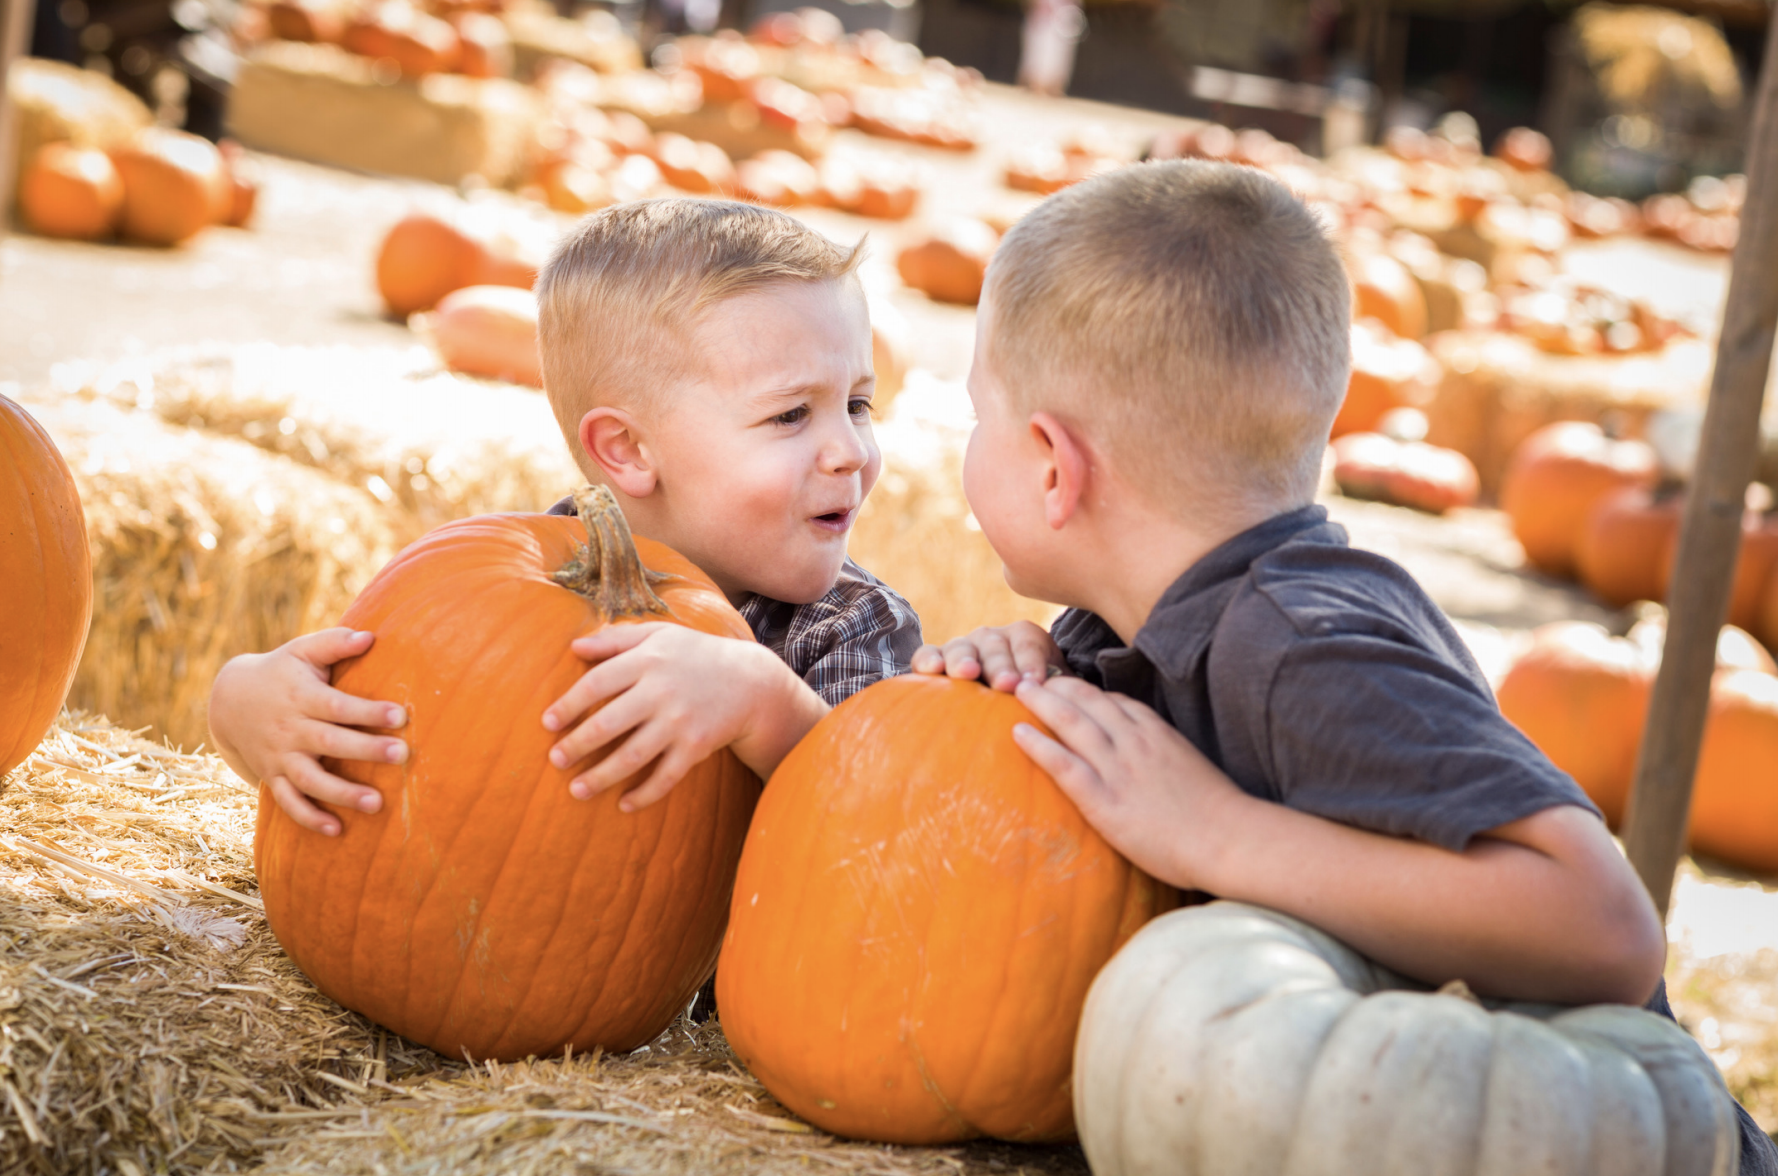 Boys Making Faces with Pumpkins Stock